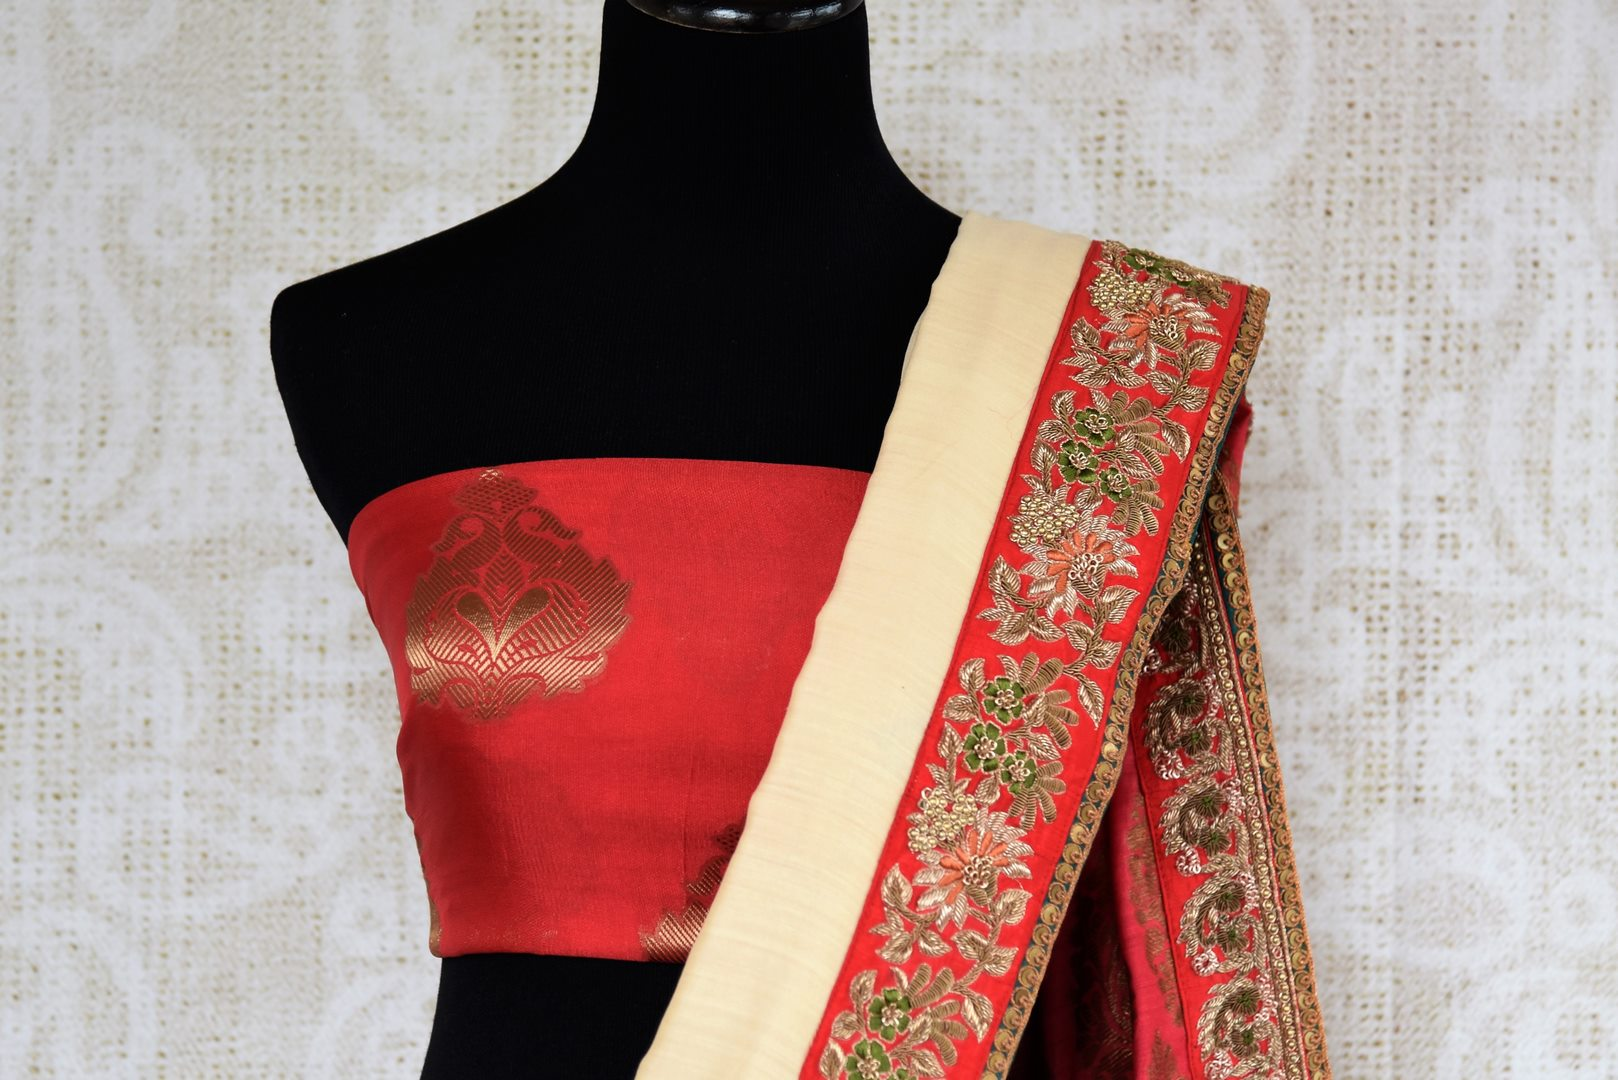 Buy beautiful cream tussar georgette Banarasi saree online in USA with embroidery, The saree is a beautiful drape for a traditional Indian look at weddings. Find more such exquisite Indian designer saris in USA at Pure Elegance Indian fashion store. Shop now.-blouse pallu